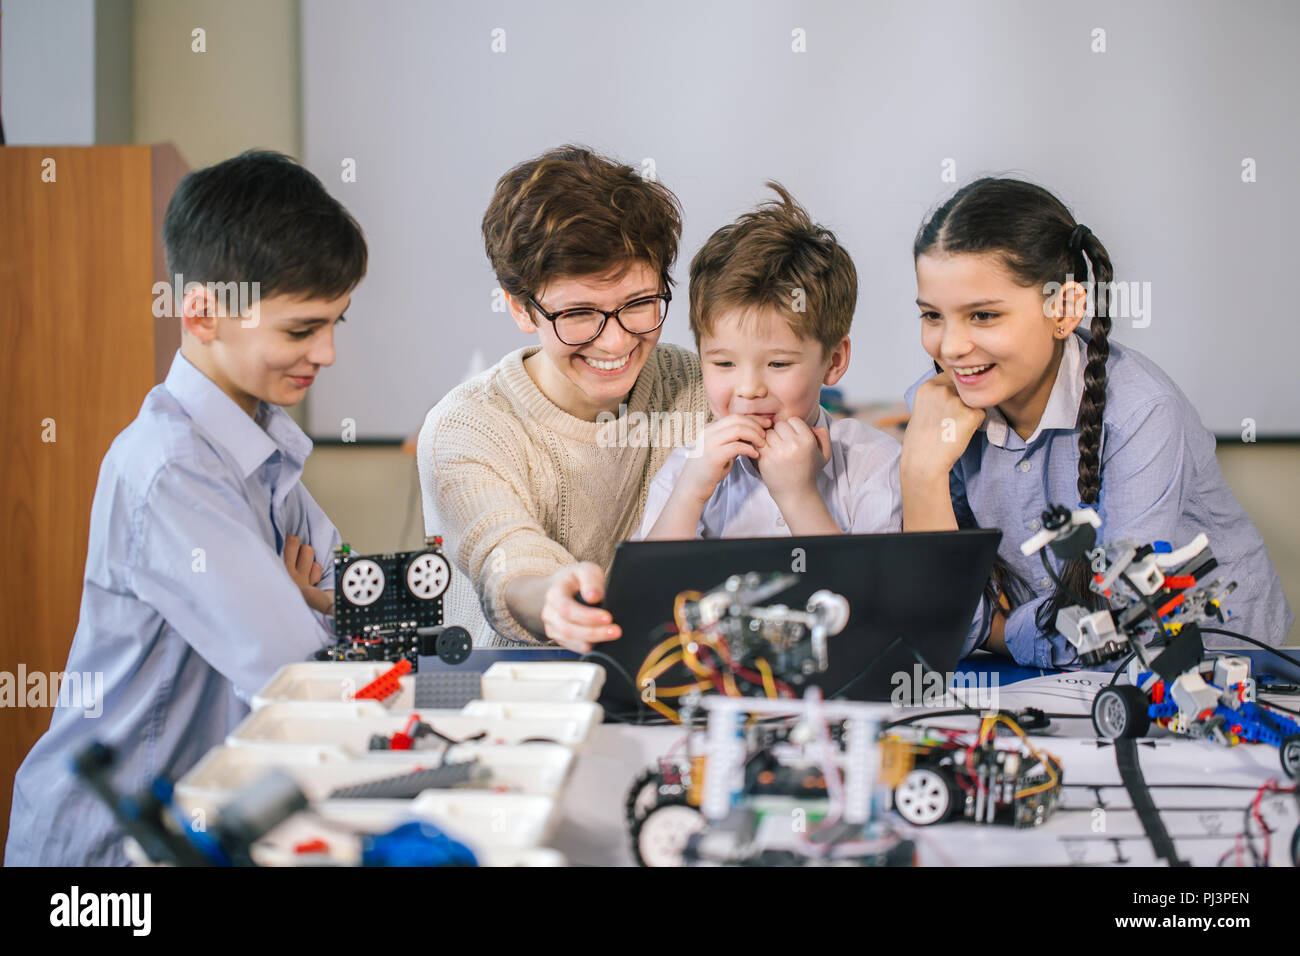 Curious children learn programming using laptops on extracurricular classes - Stock Image